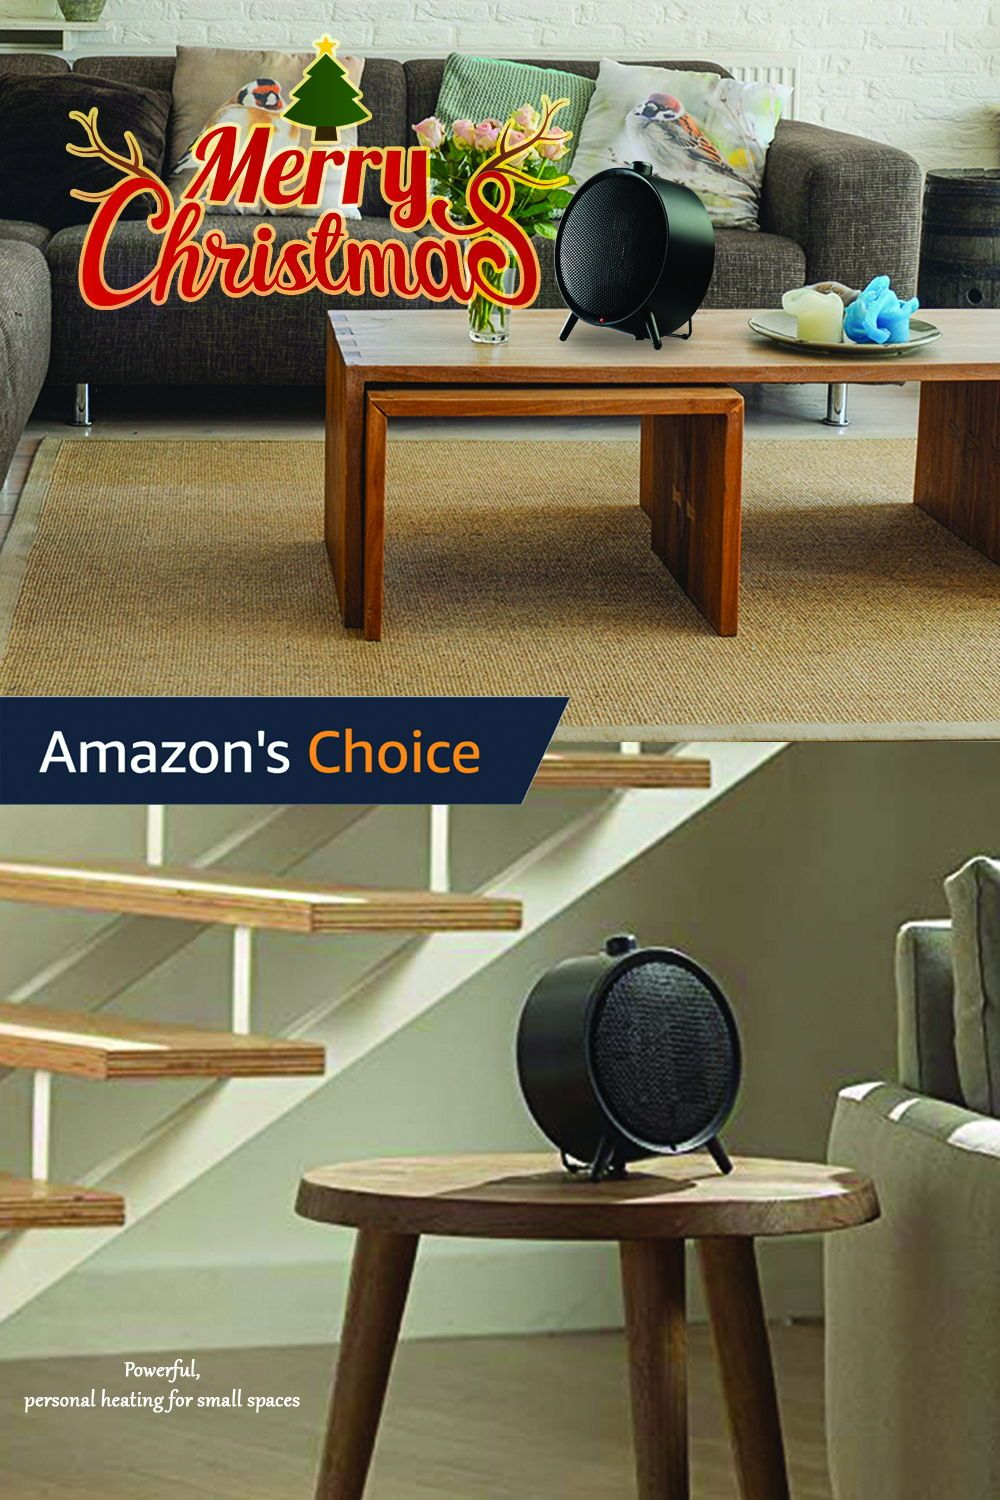 Top 10 Fan Room Heaters Dec 2019 Reviews And Buyers Guide